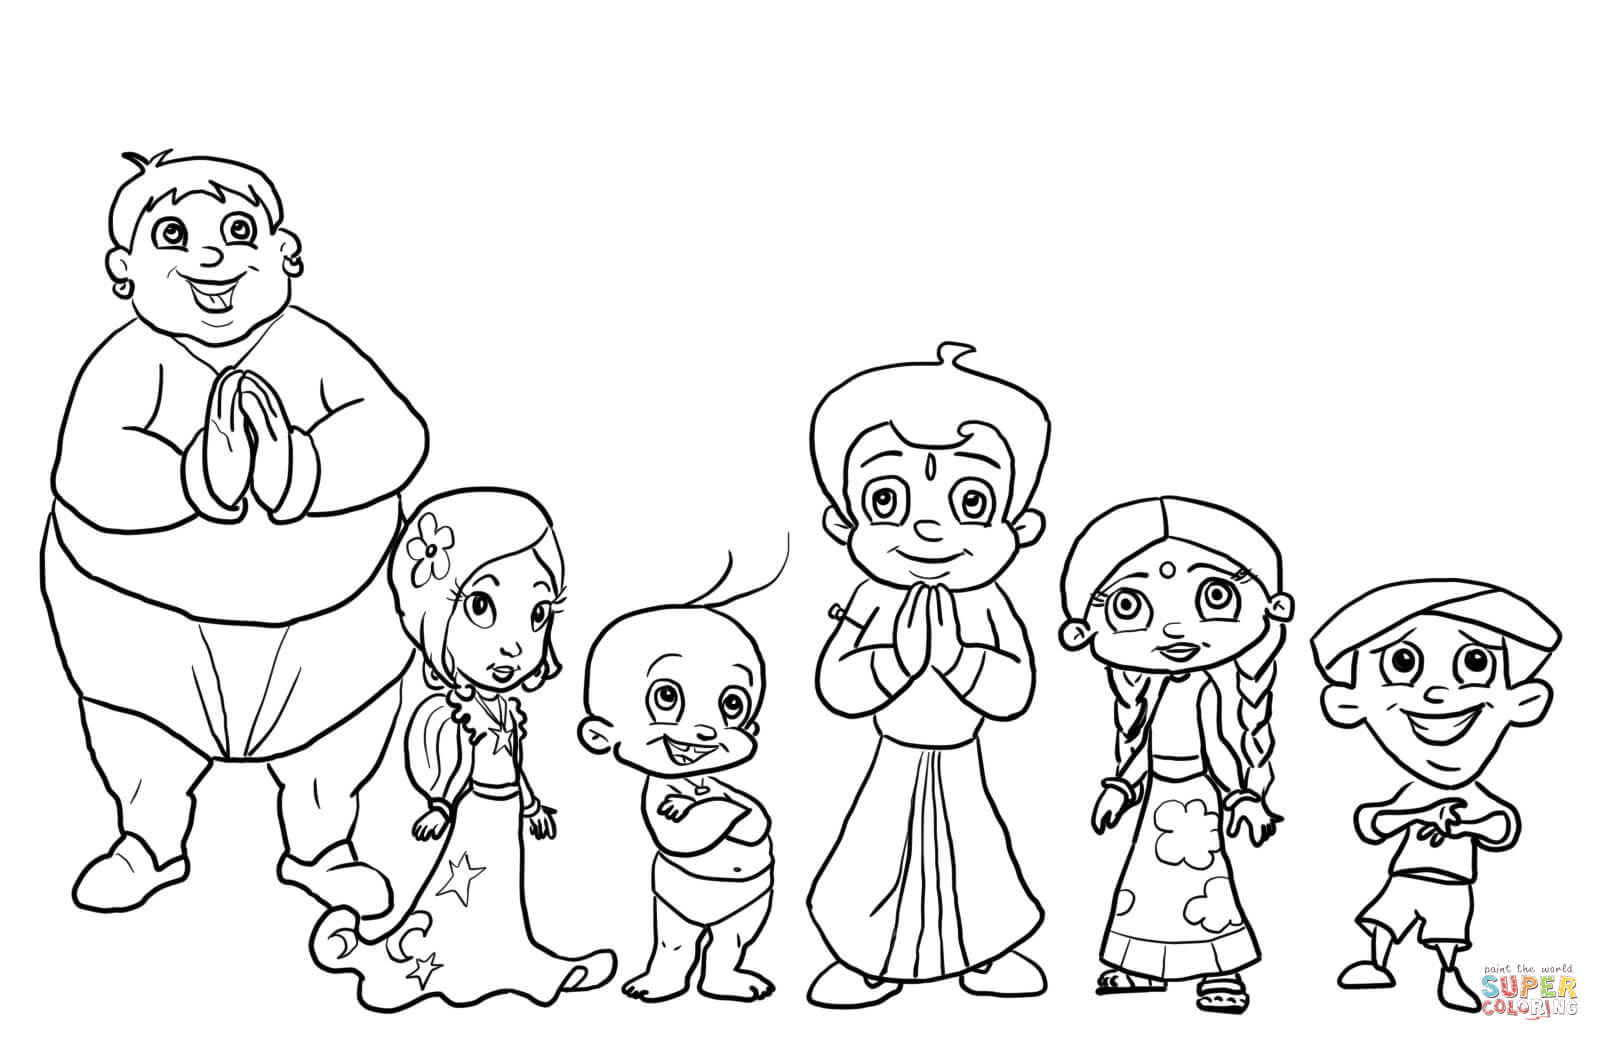 Chhota Bheem Characters Coloring Page